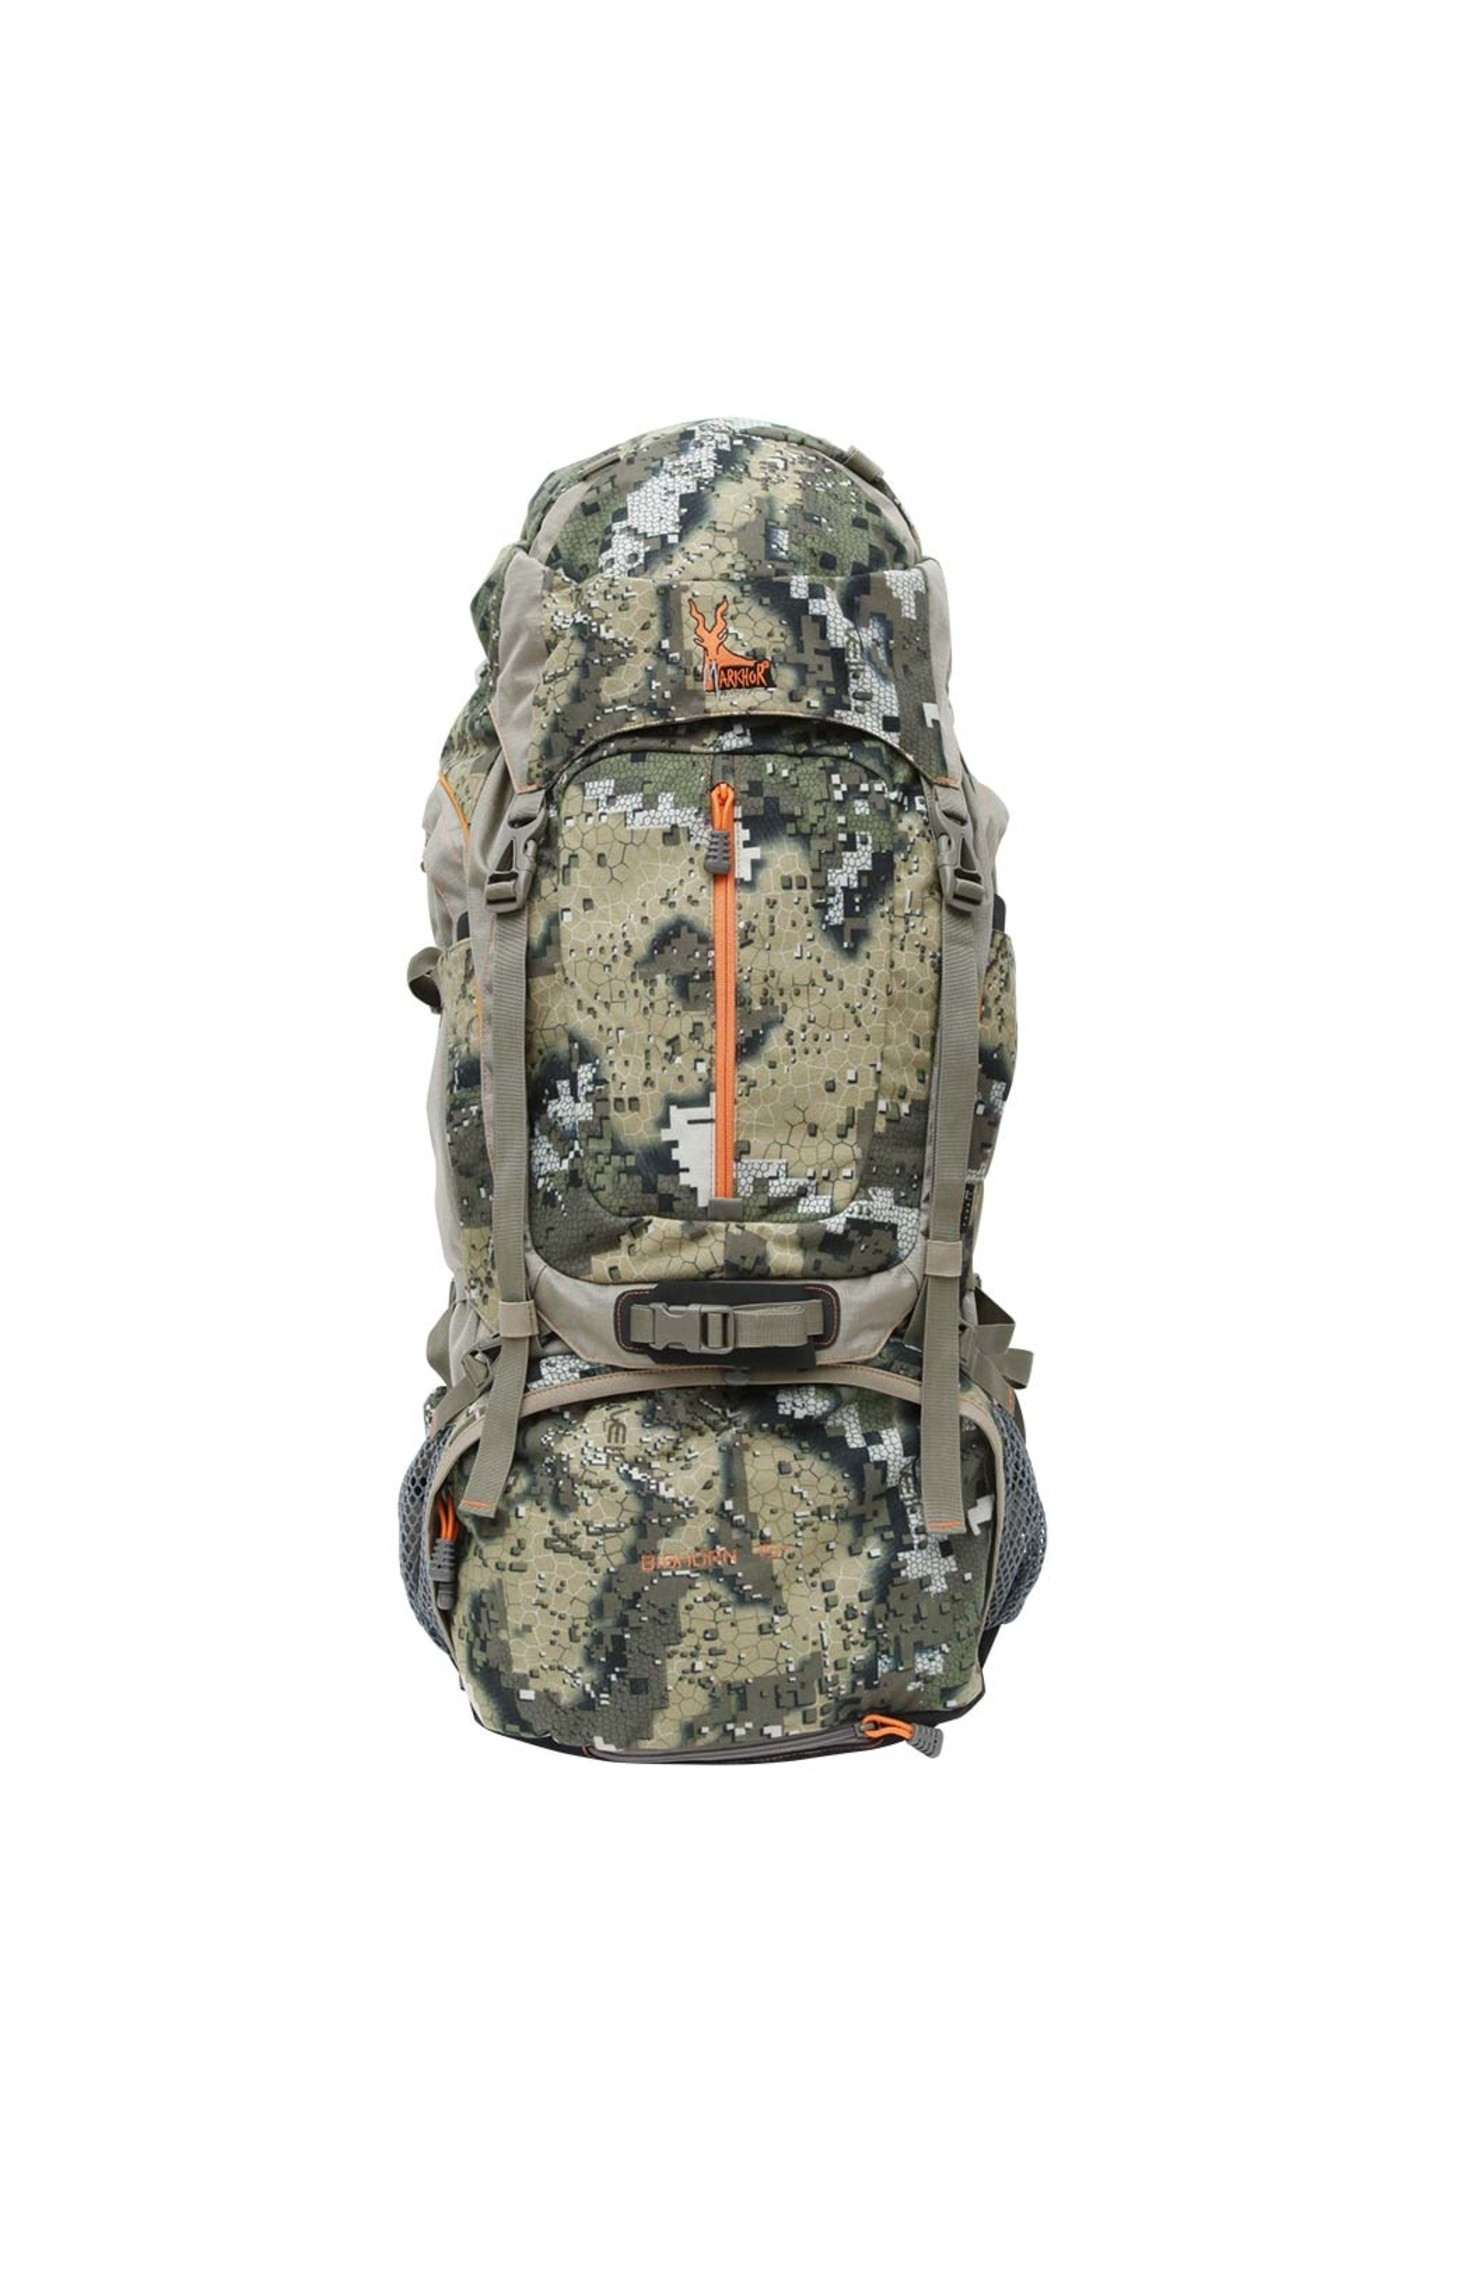 Equipement Sac à dos Bighorn 75+ Camouflage Pixel Desolve Veil Markhor Hunting - 1